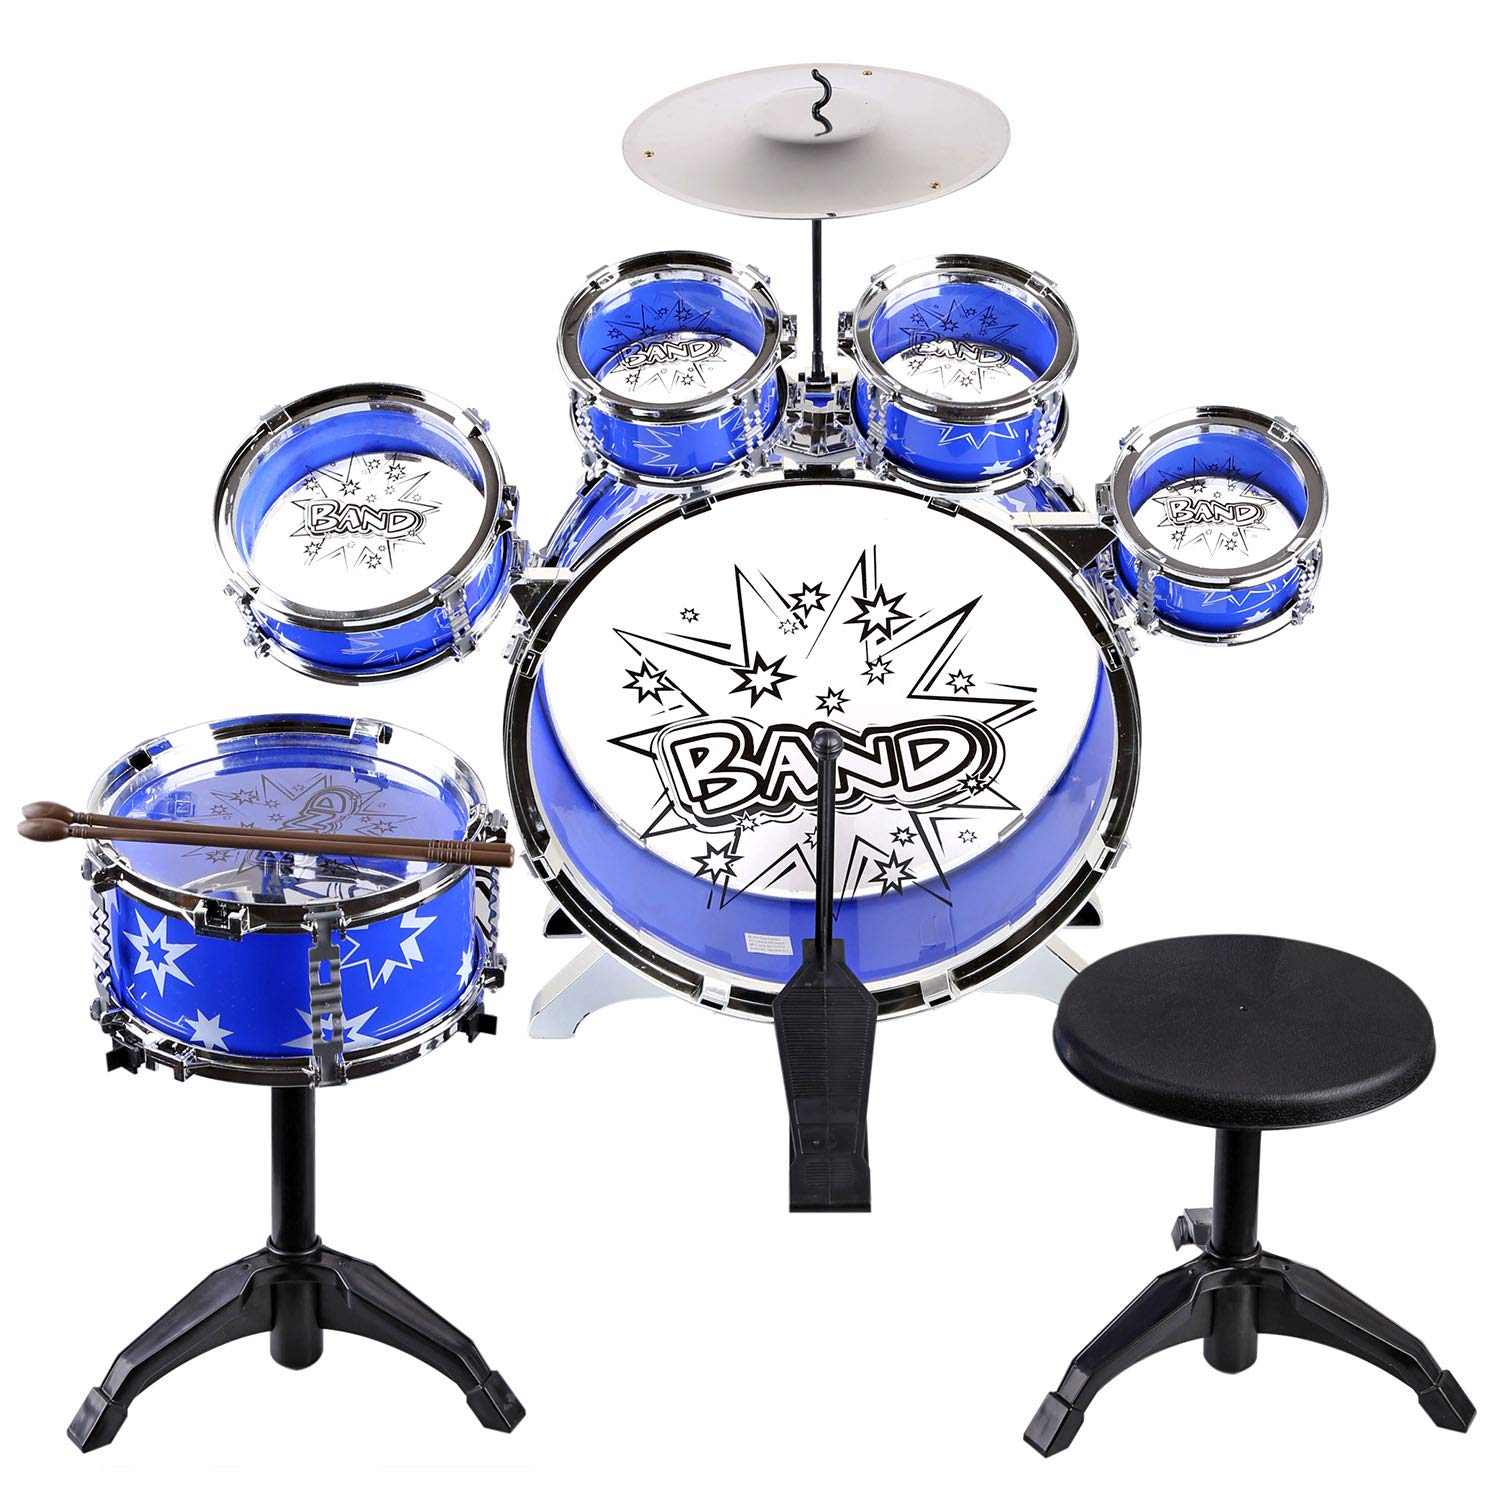 URBAN KIT Kids Musical Drum Instrument Set   drum sets for toddlers   toy drums for kids  drum set for baby boys   band set for kids   girls toy-Blue